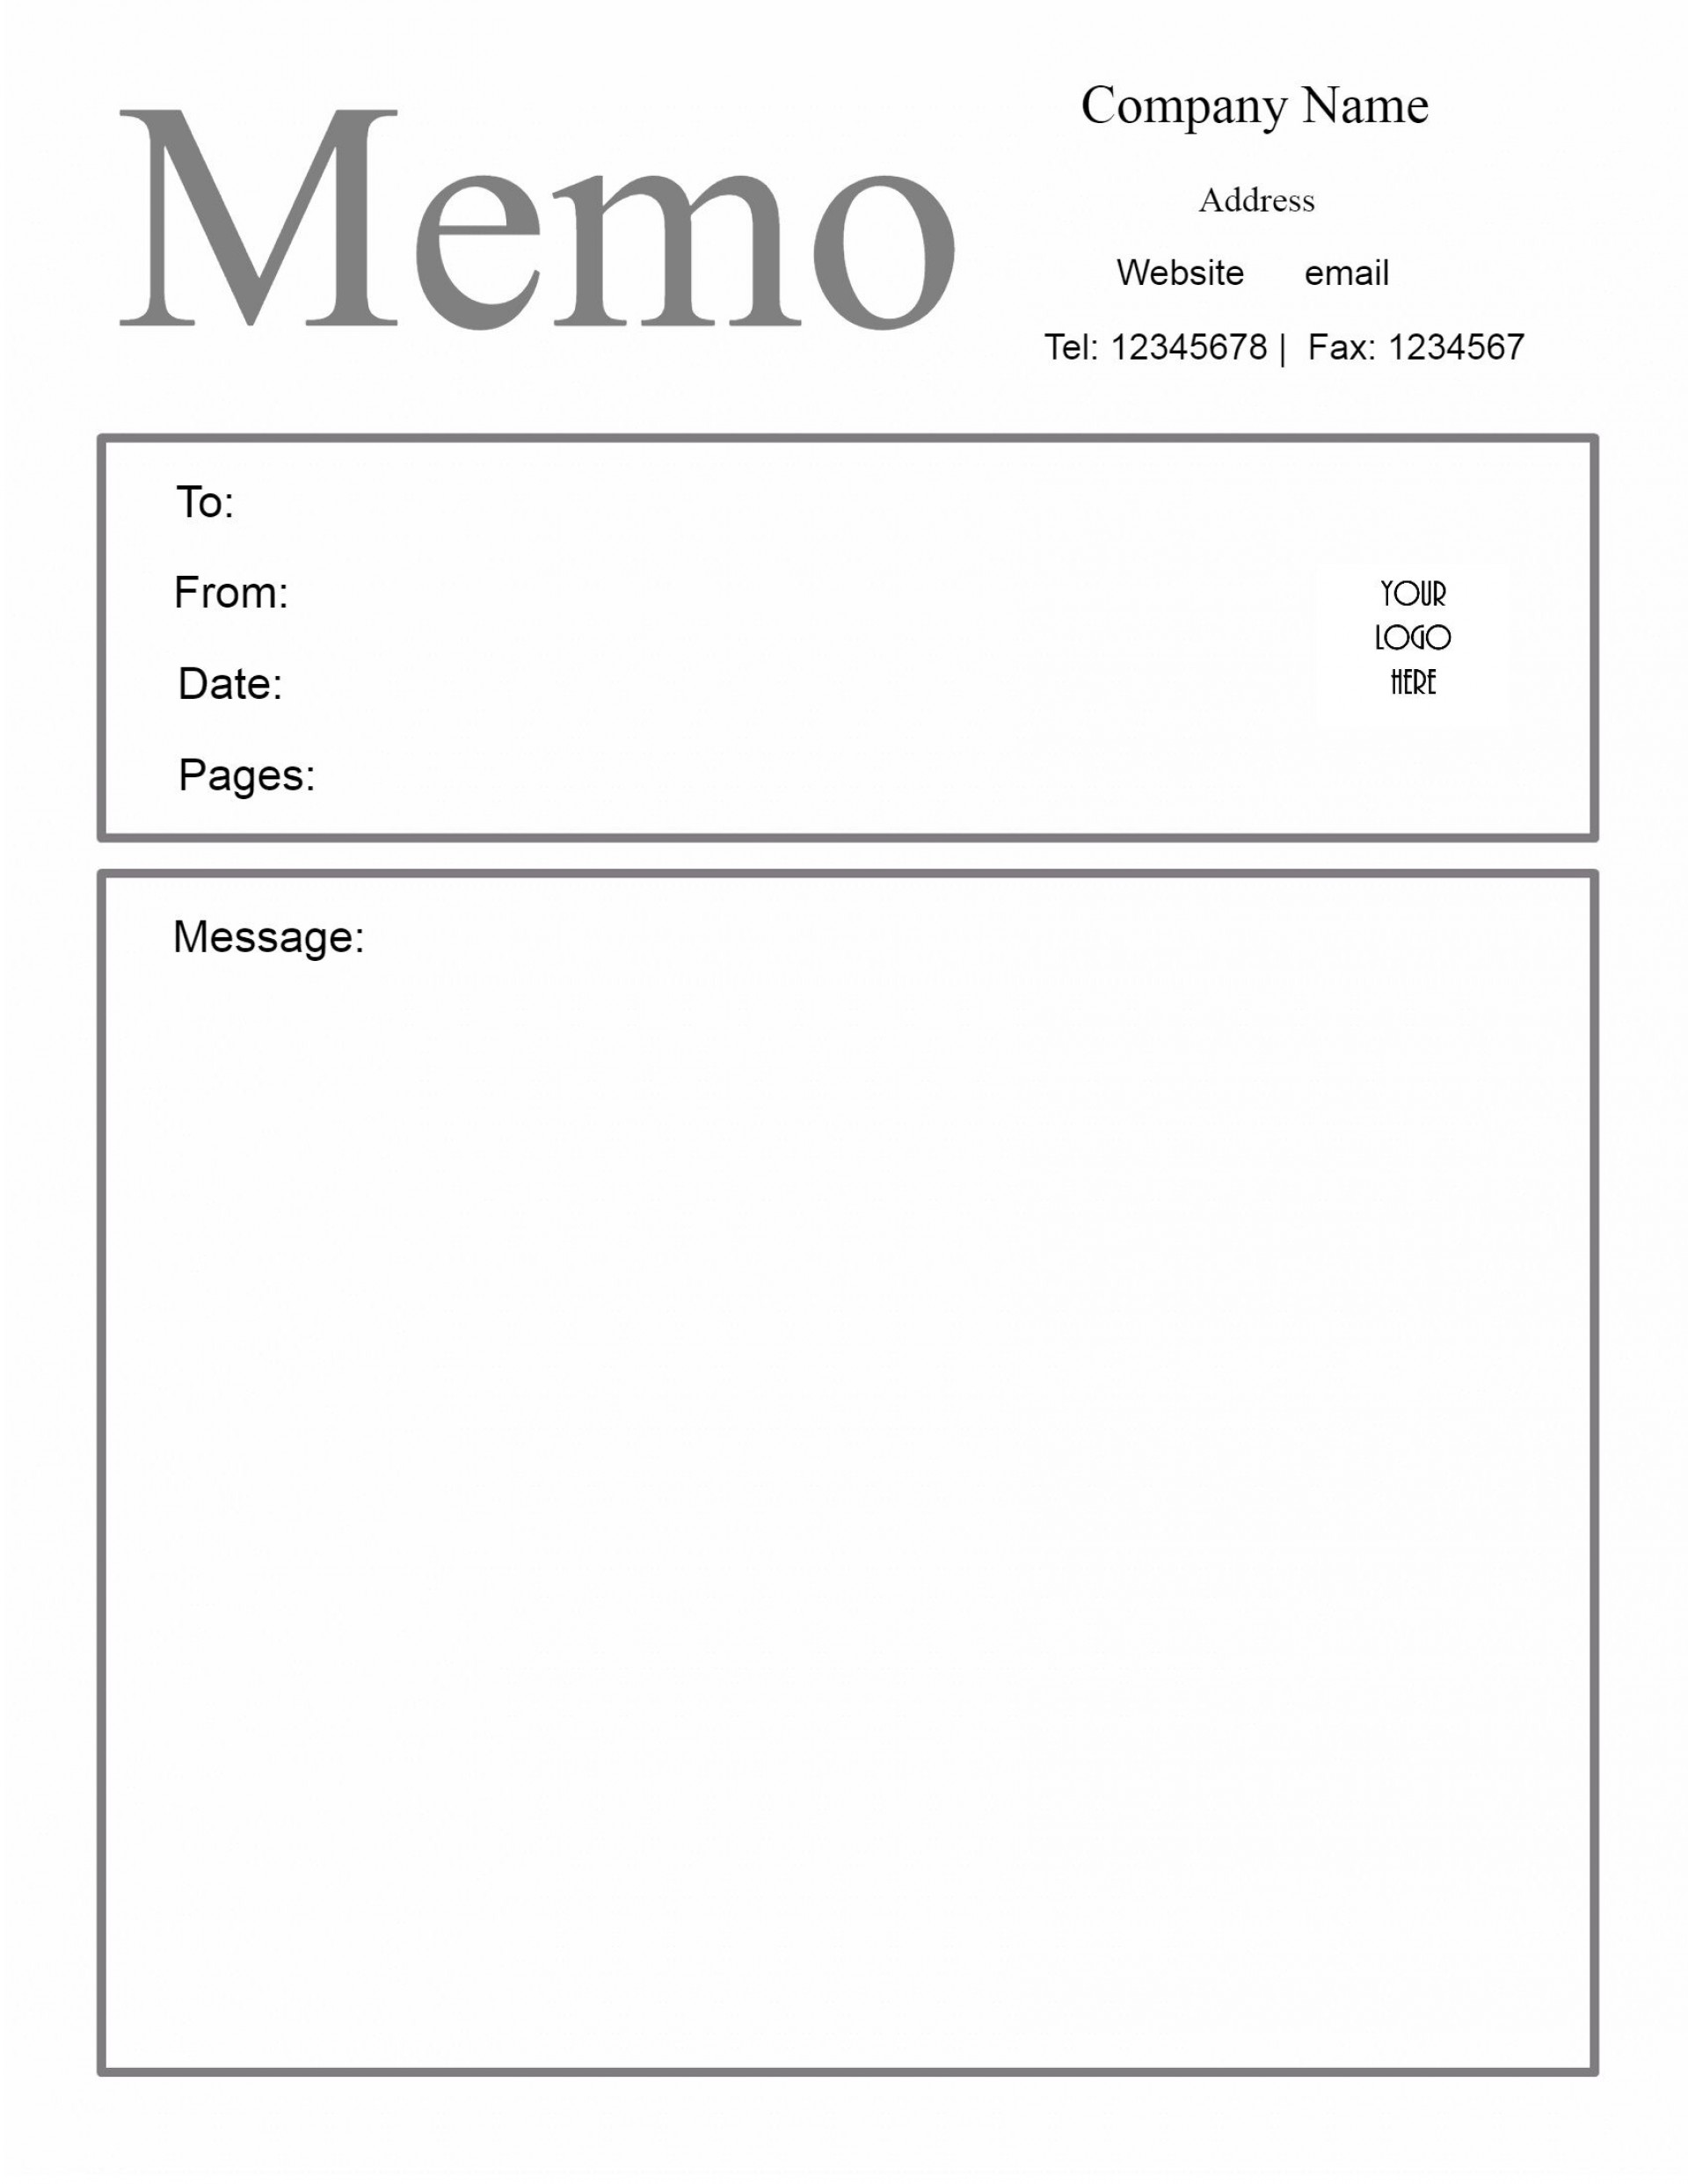 009 Outstanding Microsoft Word Memo Template High Definition  Professional 2010 Free Legal1920